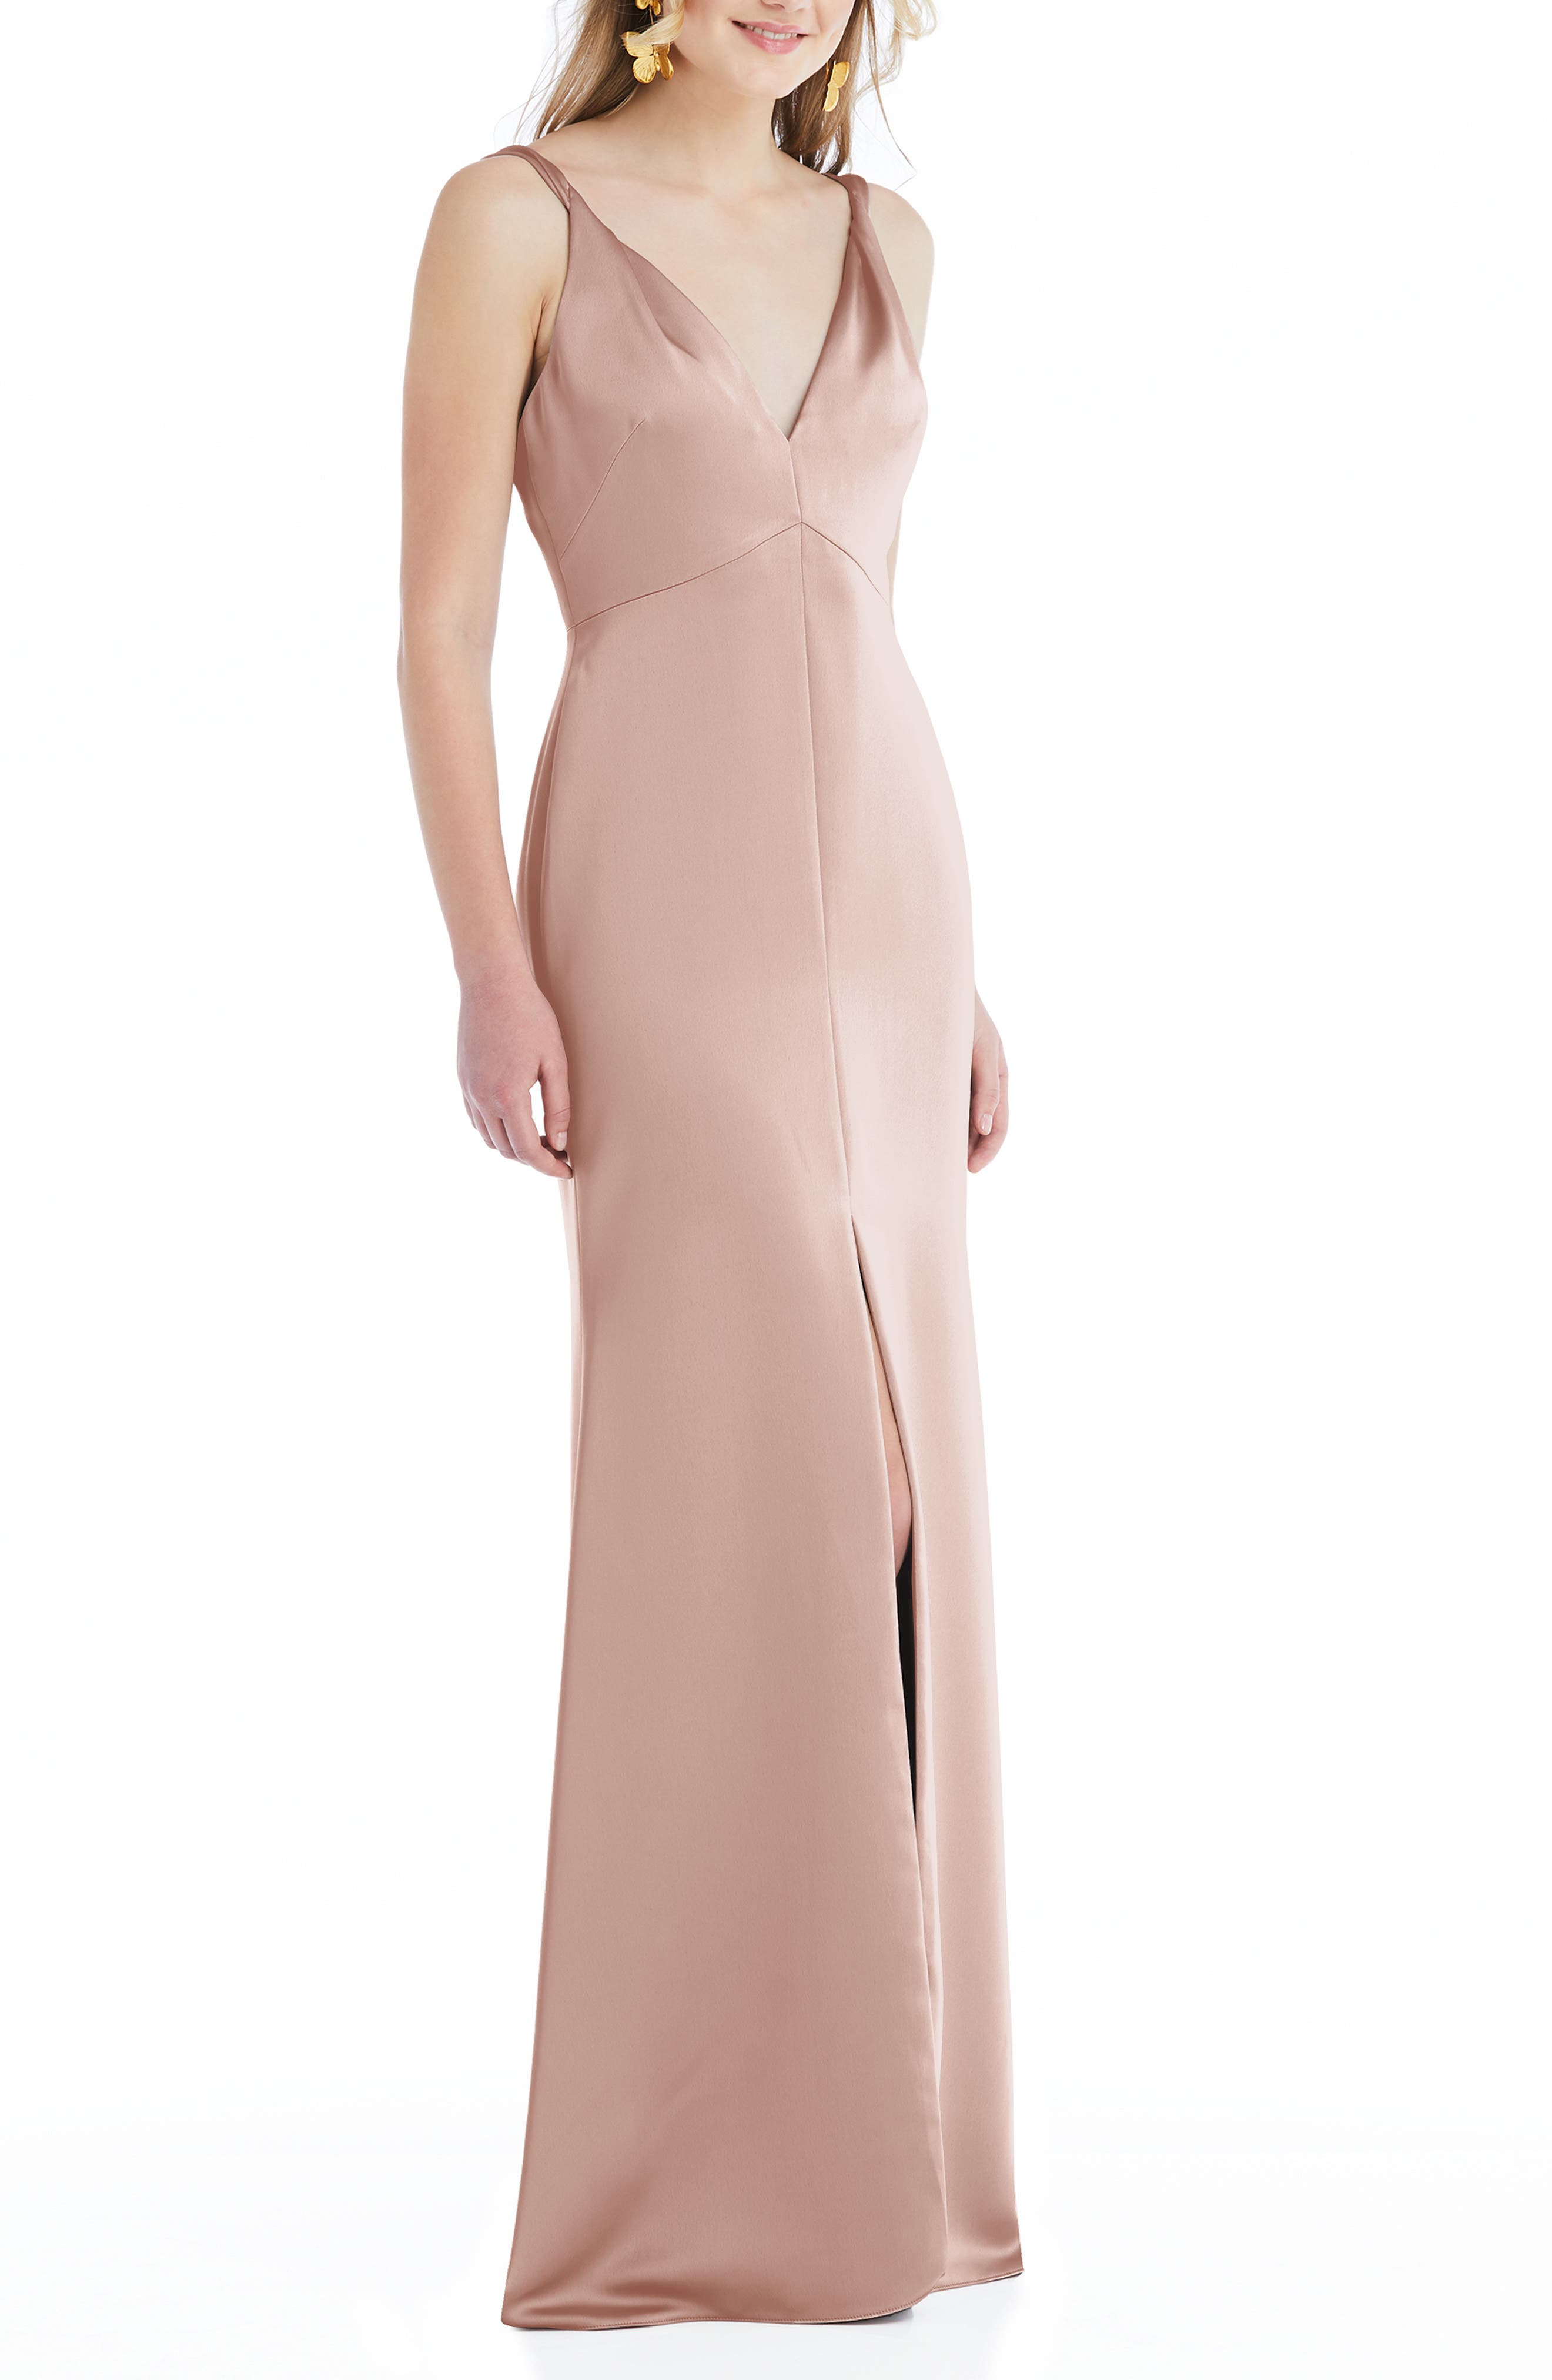 Neve Twist Strap Satin Charmeuse Gown